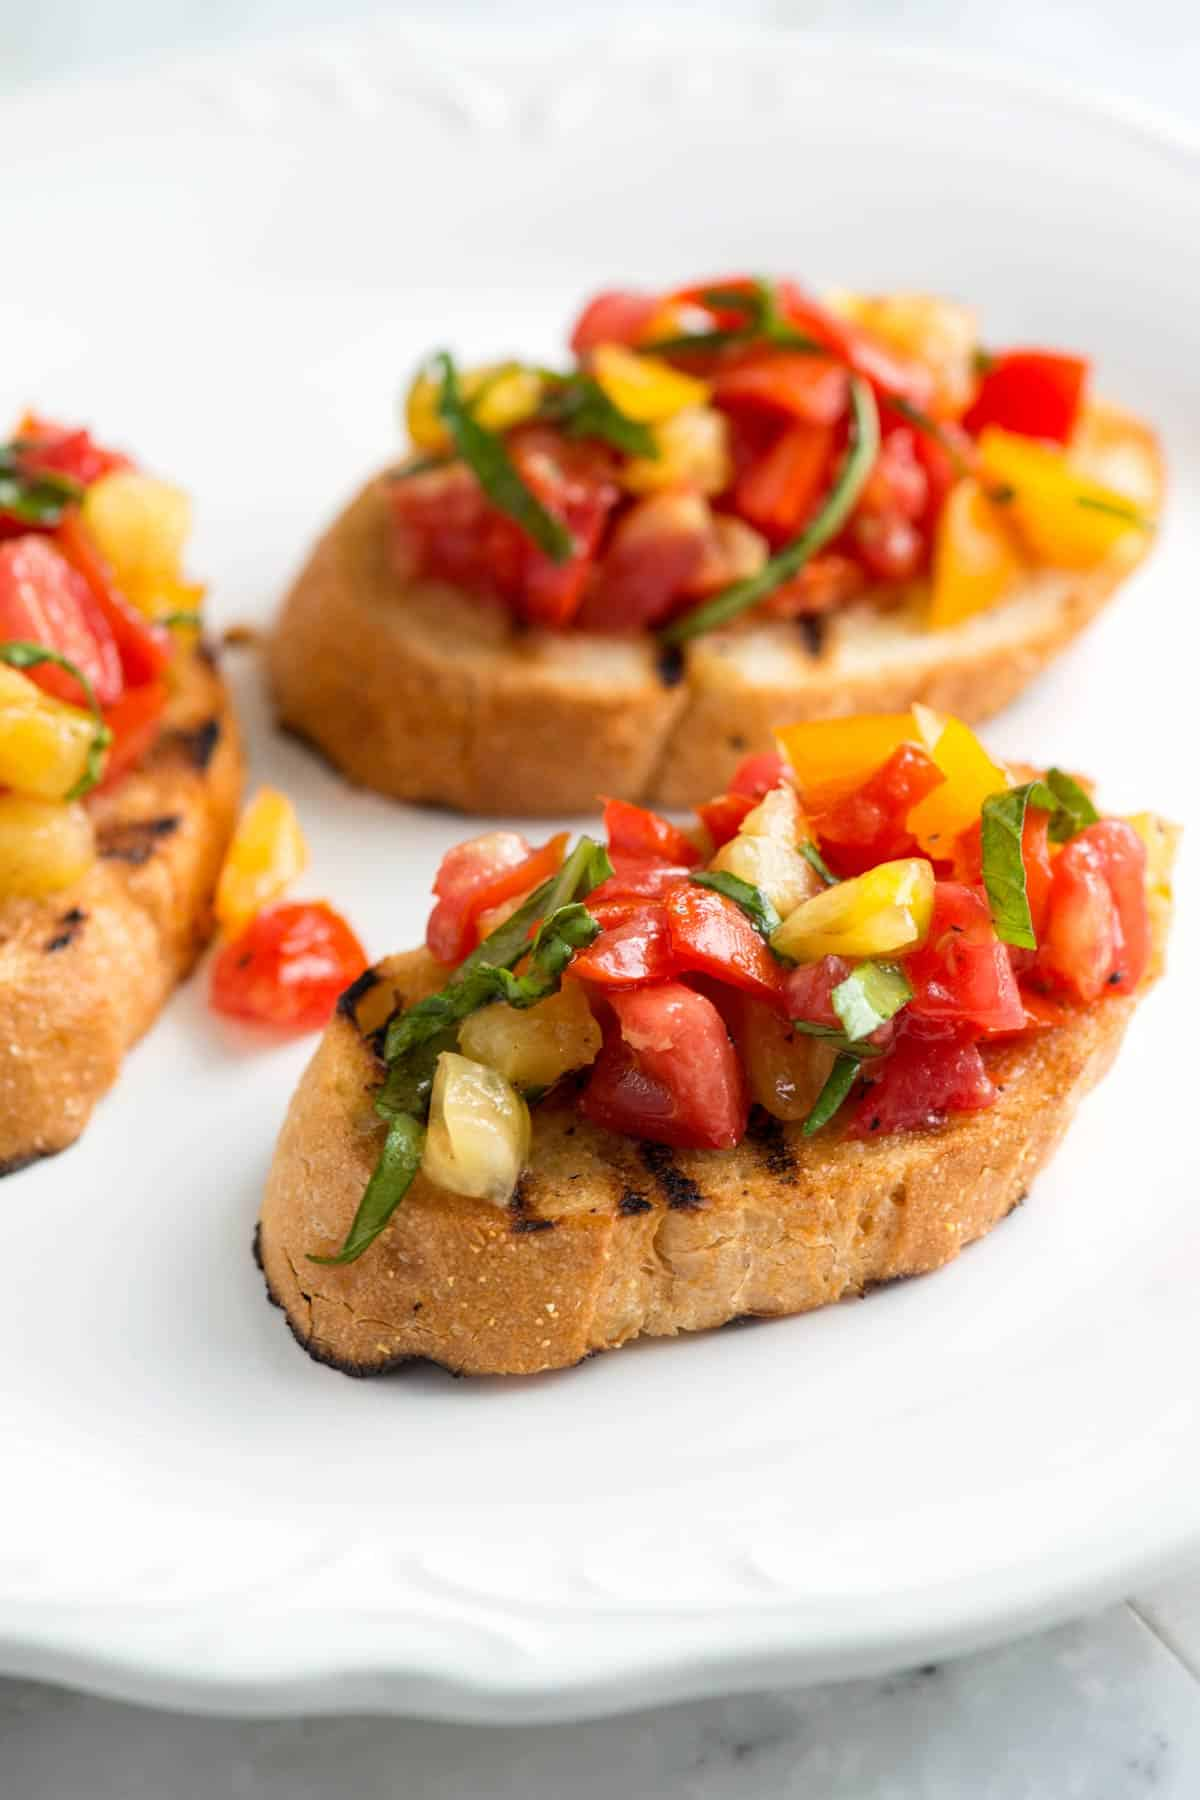 How to Make the Best Bruschetta